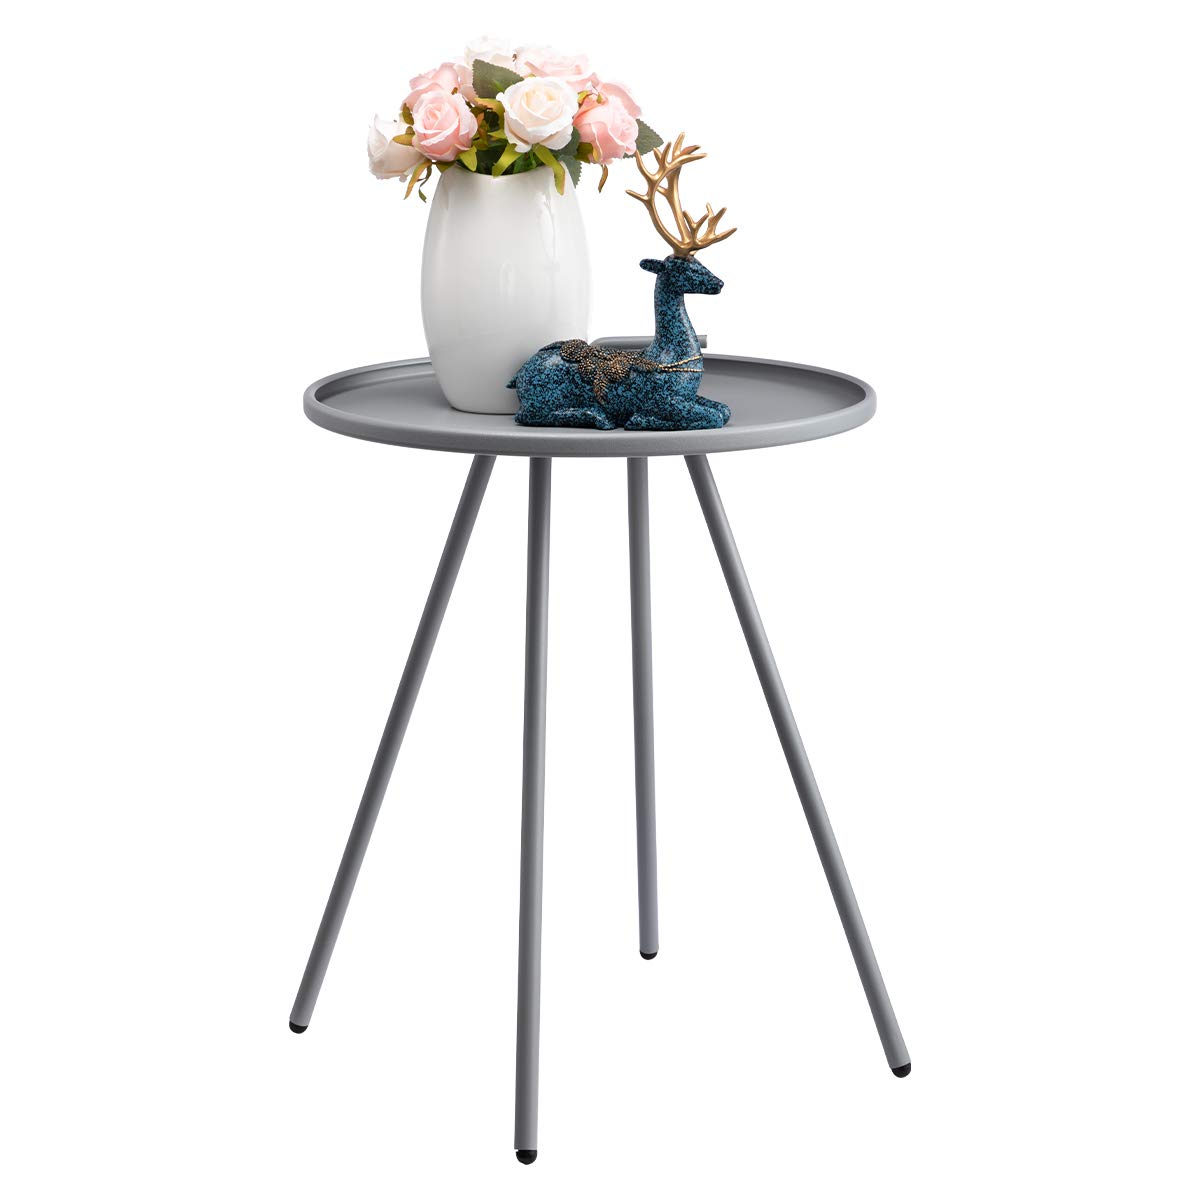 HollyHOME Convenient Patio Steel Side Table with Handle, Accent Small Coffee Snack Table, Round Metal End Table for Outdoor or Indoor Use, H 19.50 x D 16.38 , Grey